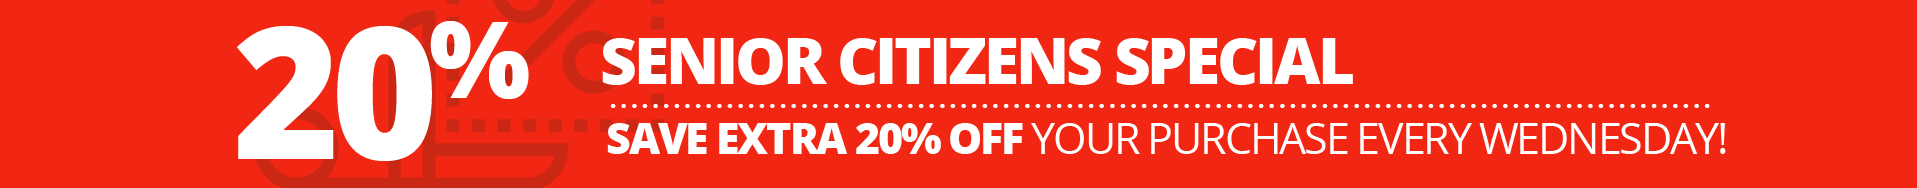 Senior Citizens Special, Save Extra 20% Off your purchase every Wednesday!